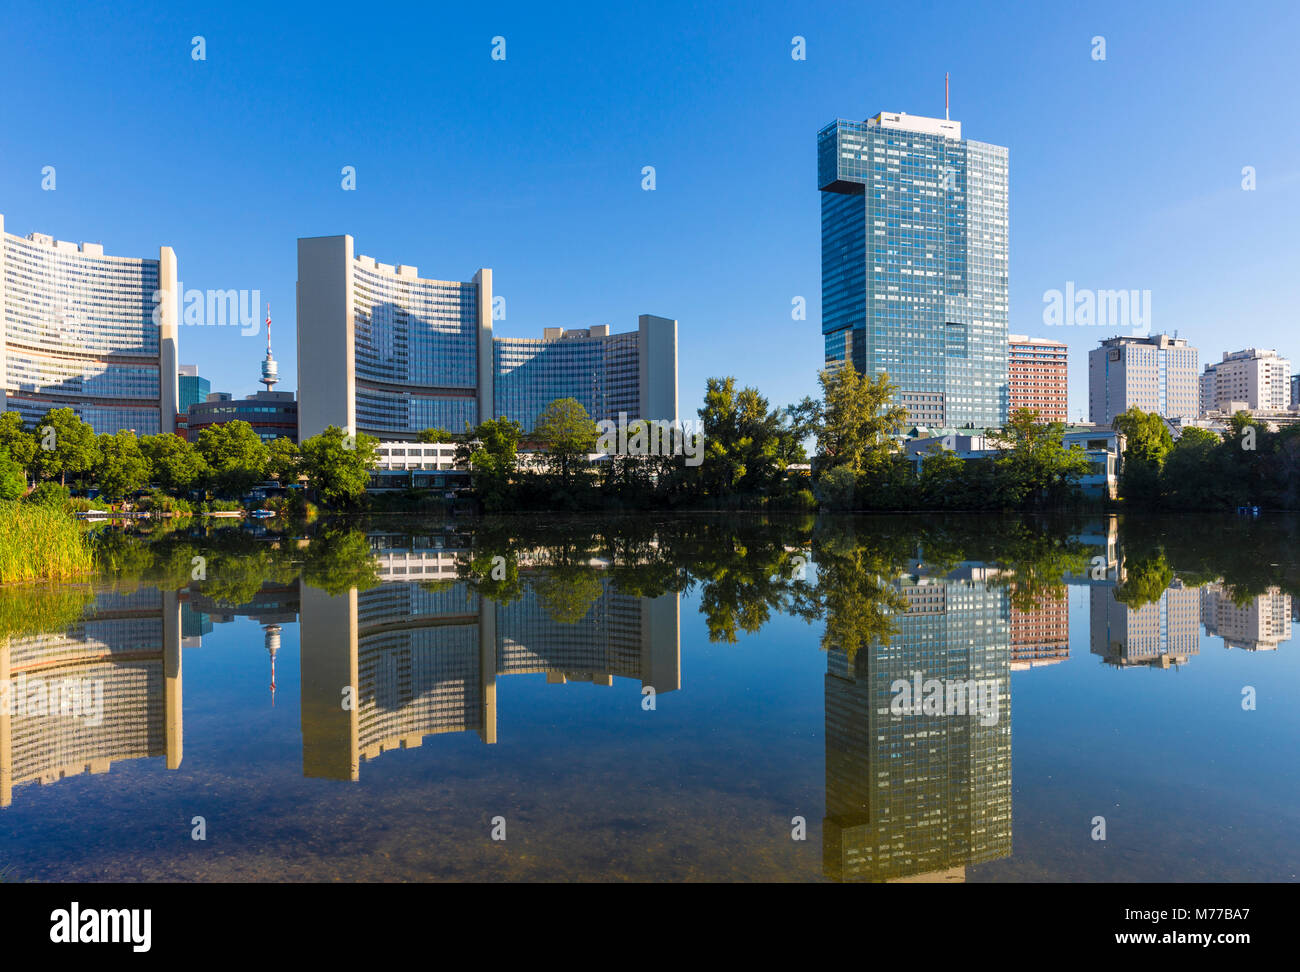 United Nations buildings reflected in lake, UNO City, Vienna, Austria, Europe - Stock Image